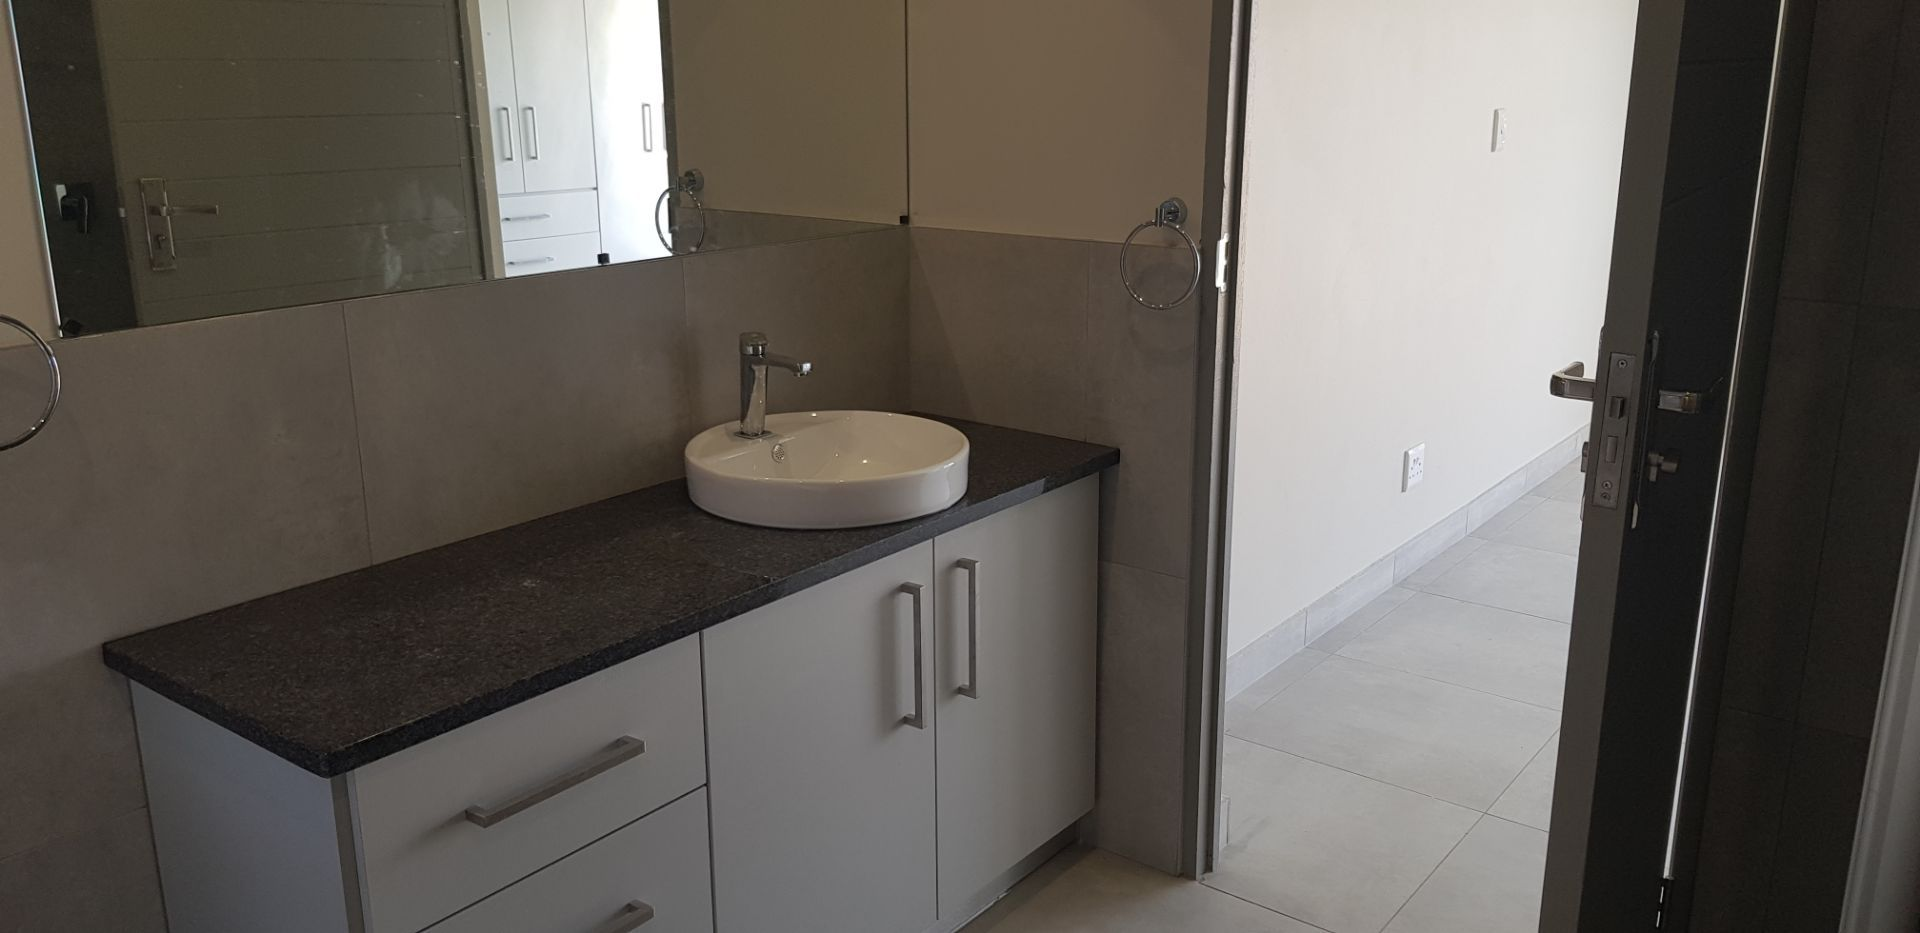 House in Lifestyle Estate - 20190712_111717.jpg